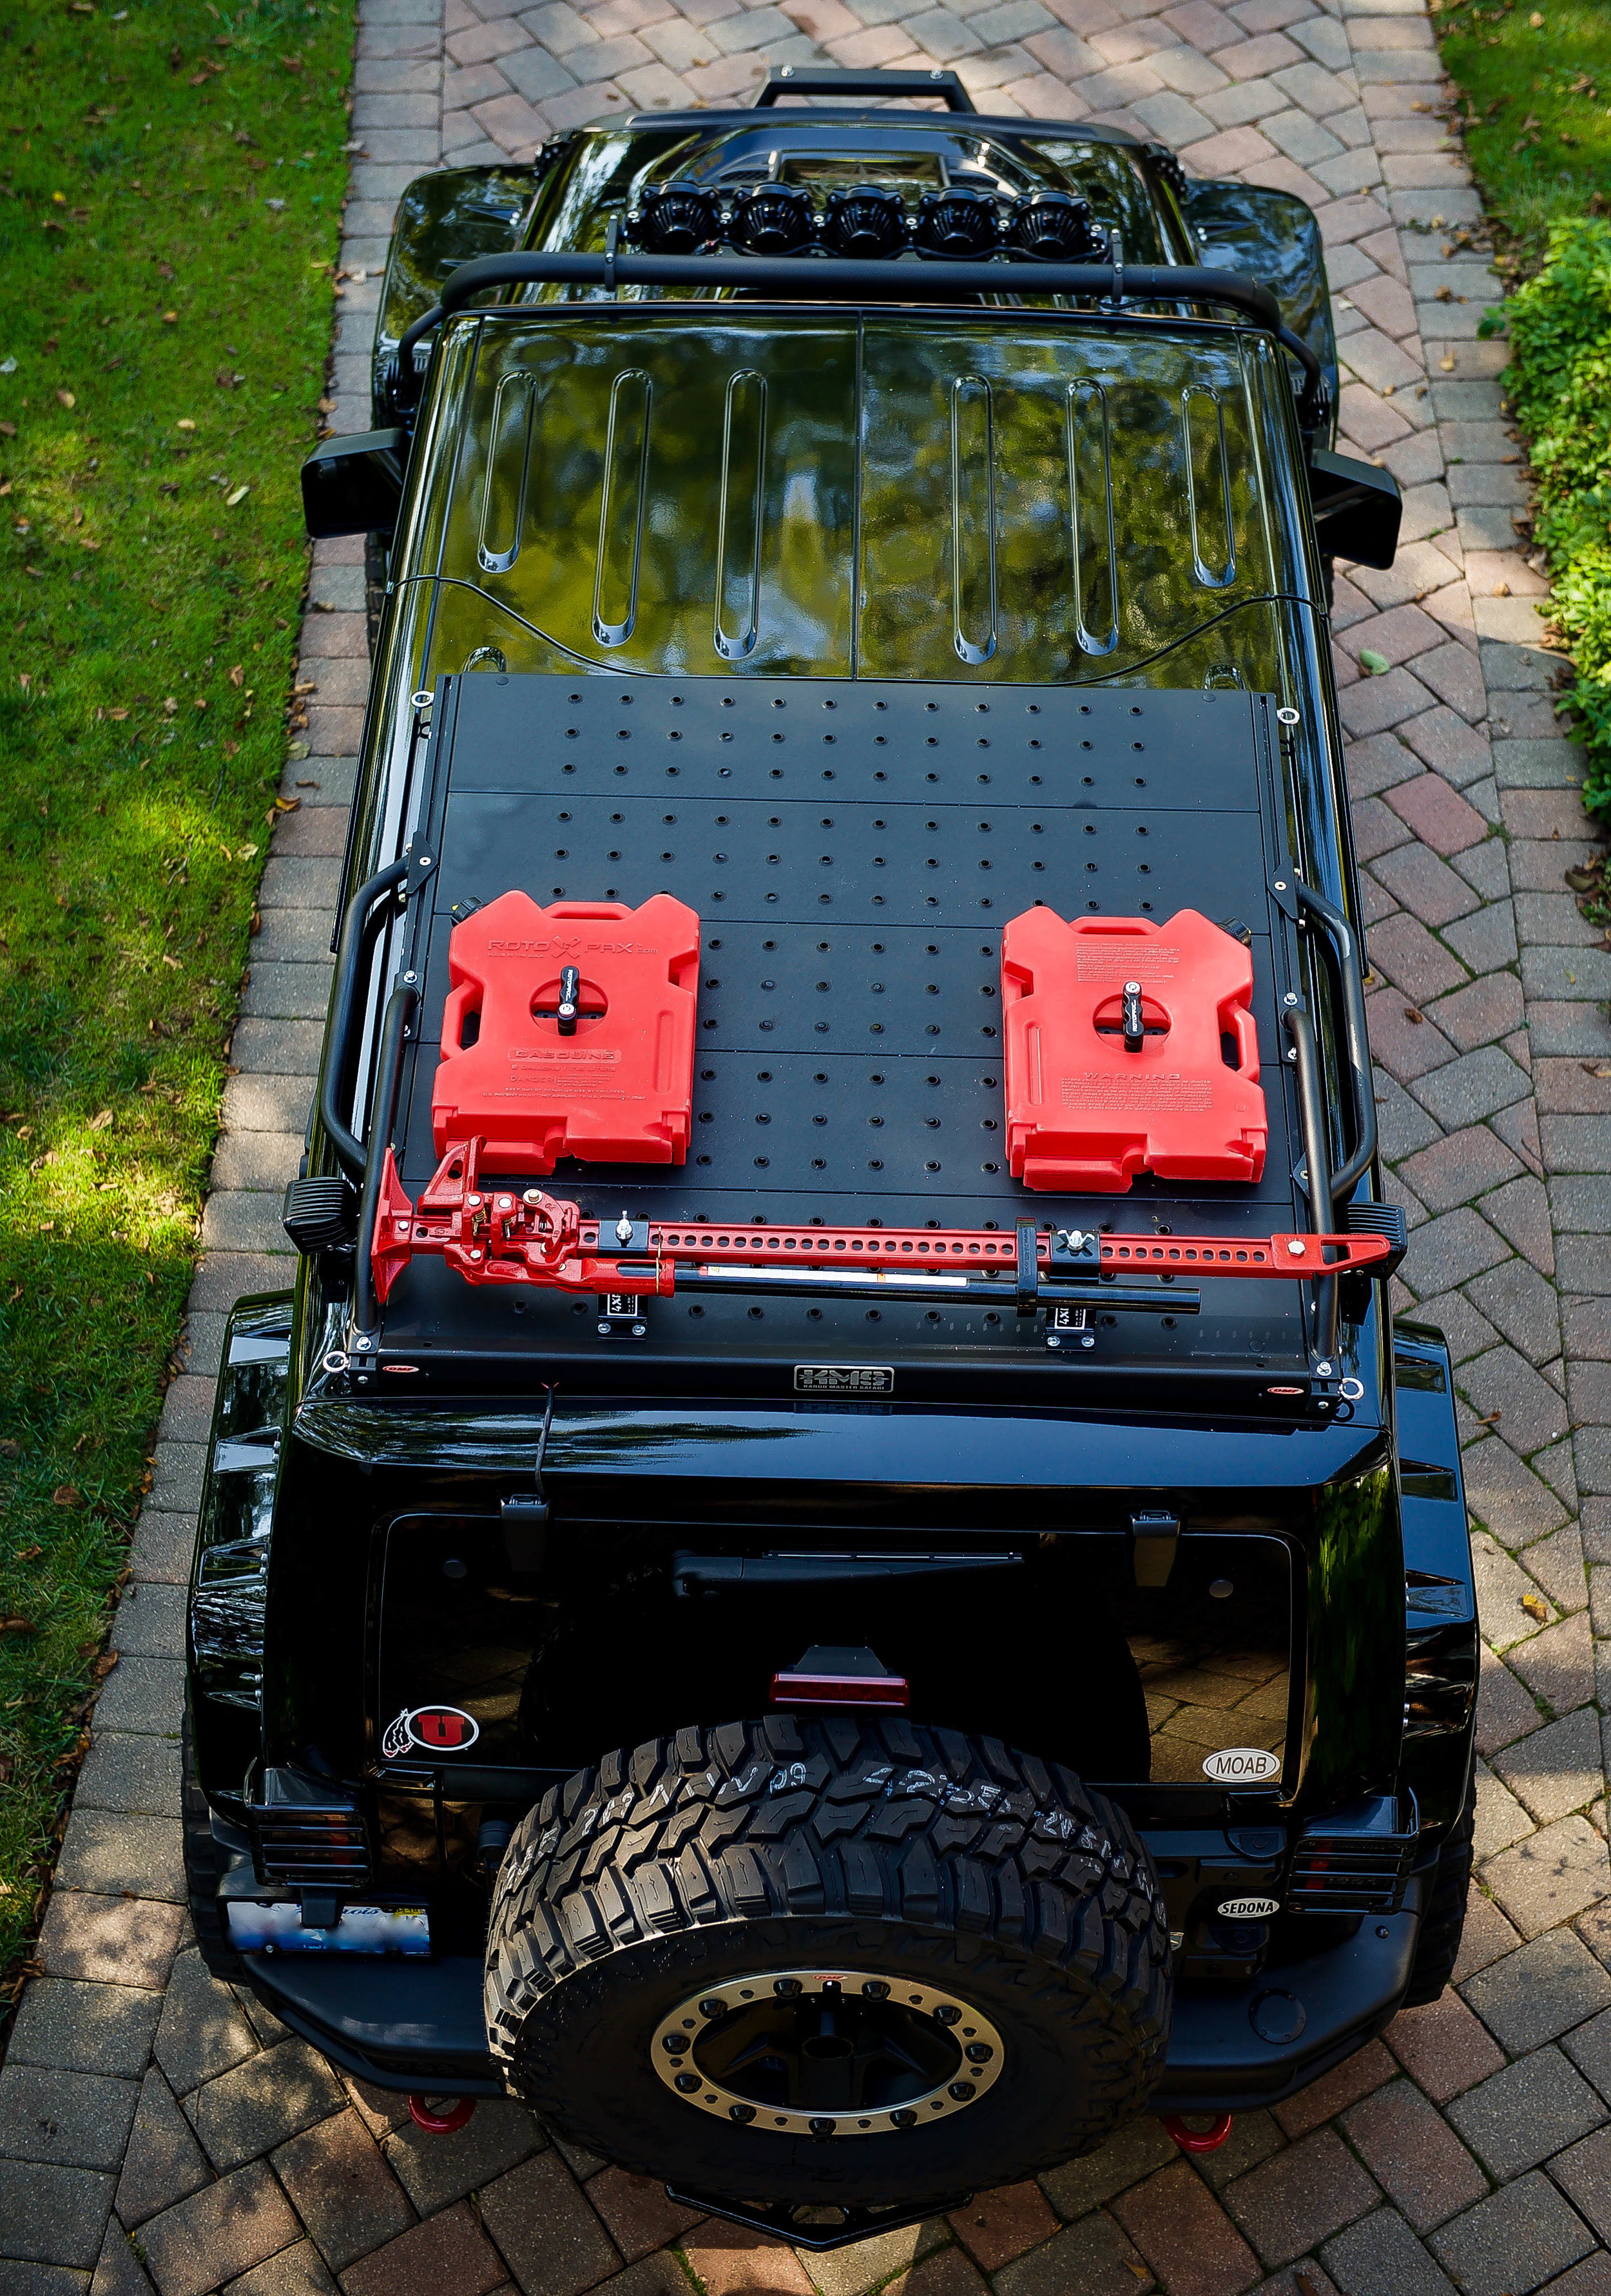 Having the Hi-Lift roof mounted frees up space inside.